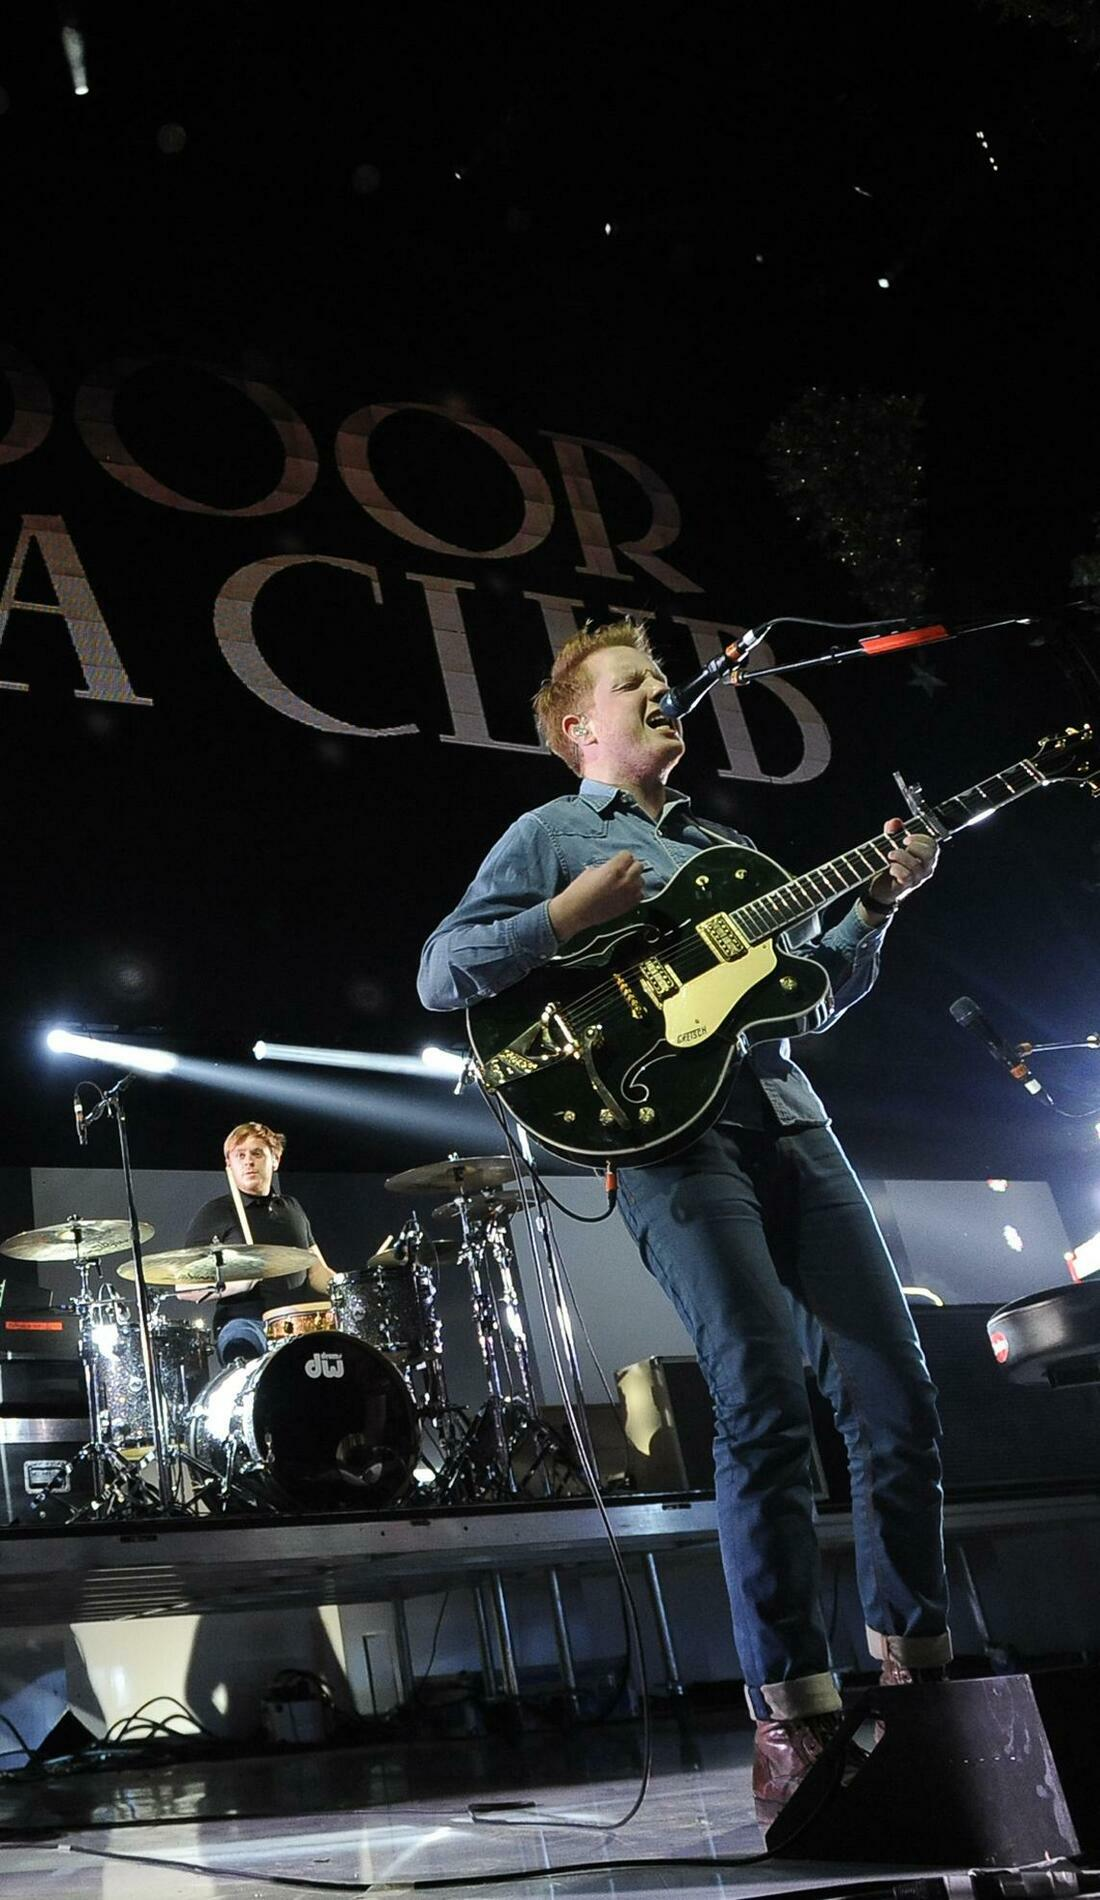 A Two Door Cinema Club live event